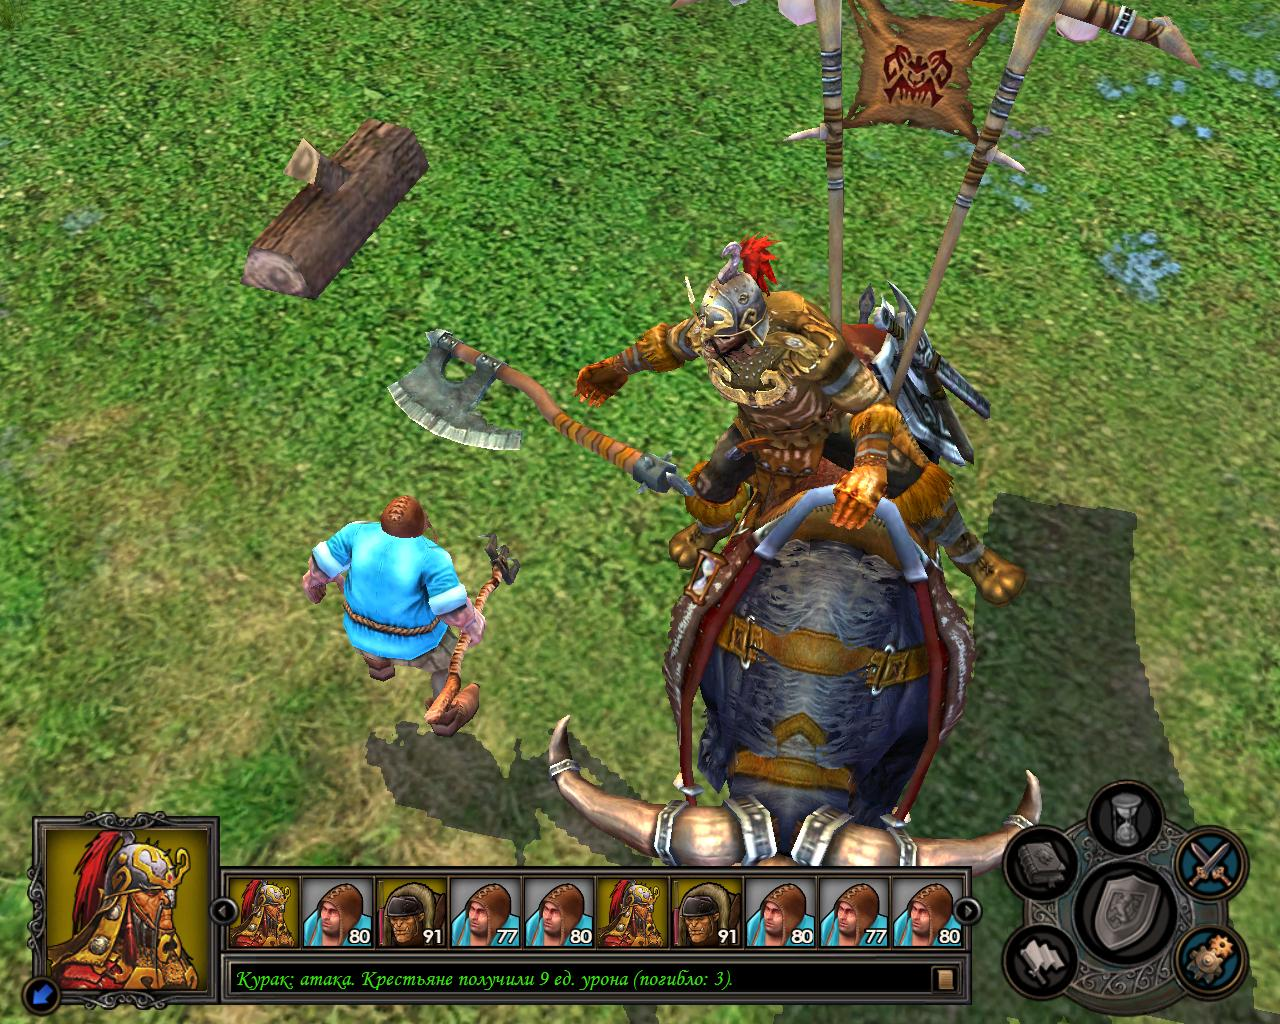 Скачать heroes of might and magic 3: complete & heroes chronicles.